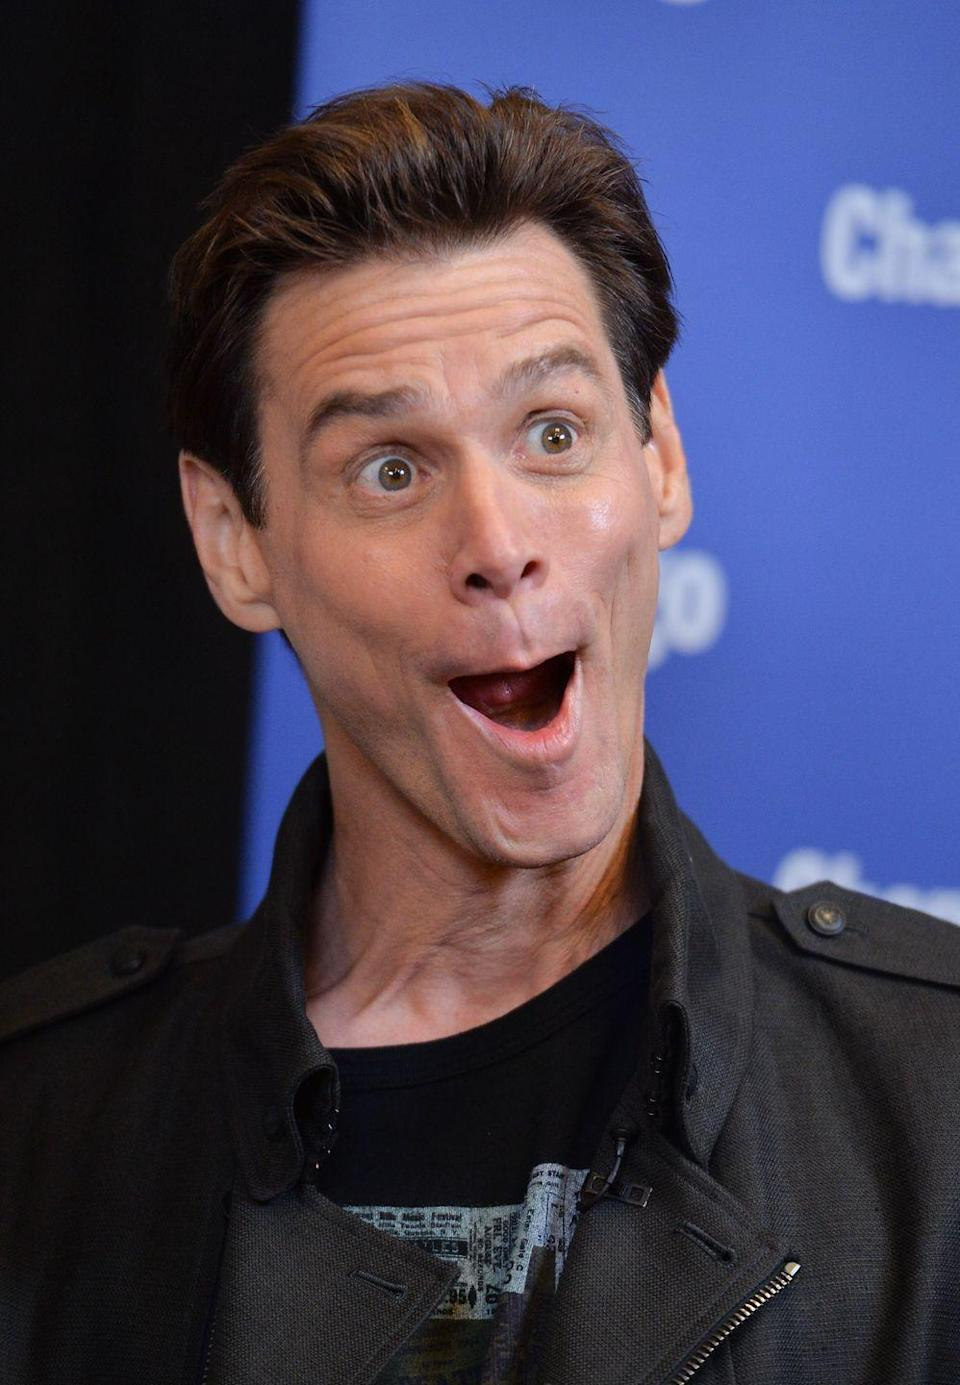 "<p>Carrey starred in the 2013 thriller <em>Kick-Ass 2</em>, released less than a year following the Sandy Hook Elementary School shooting. He <a href=""https://twitter.com/JimCarrey/status/348886602384281600"" rel=""nofollow noopener"" target=""_blank"" data-ylk=""slk:tweeted"" class=""link rapid-noclick-resp"">tweeted</a>, ""I did <em>Kick-Ass </em>a month before Sandy Hook and now in all good conscience I cannot support that level of violence."" </p>"